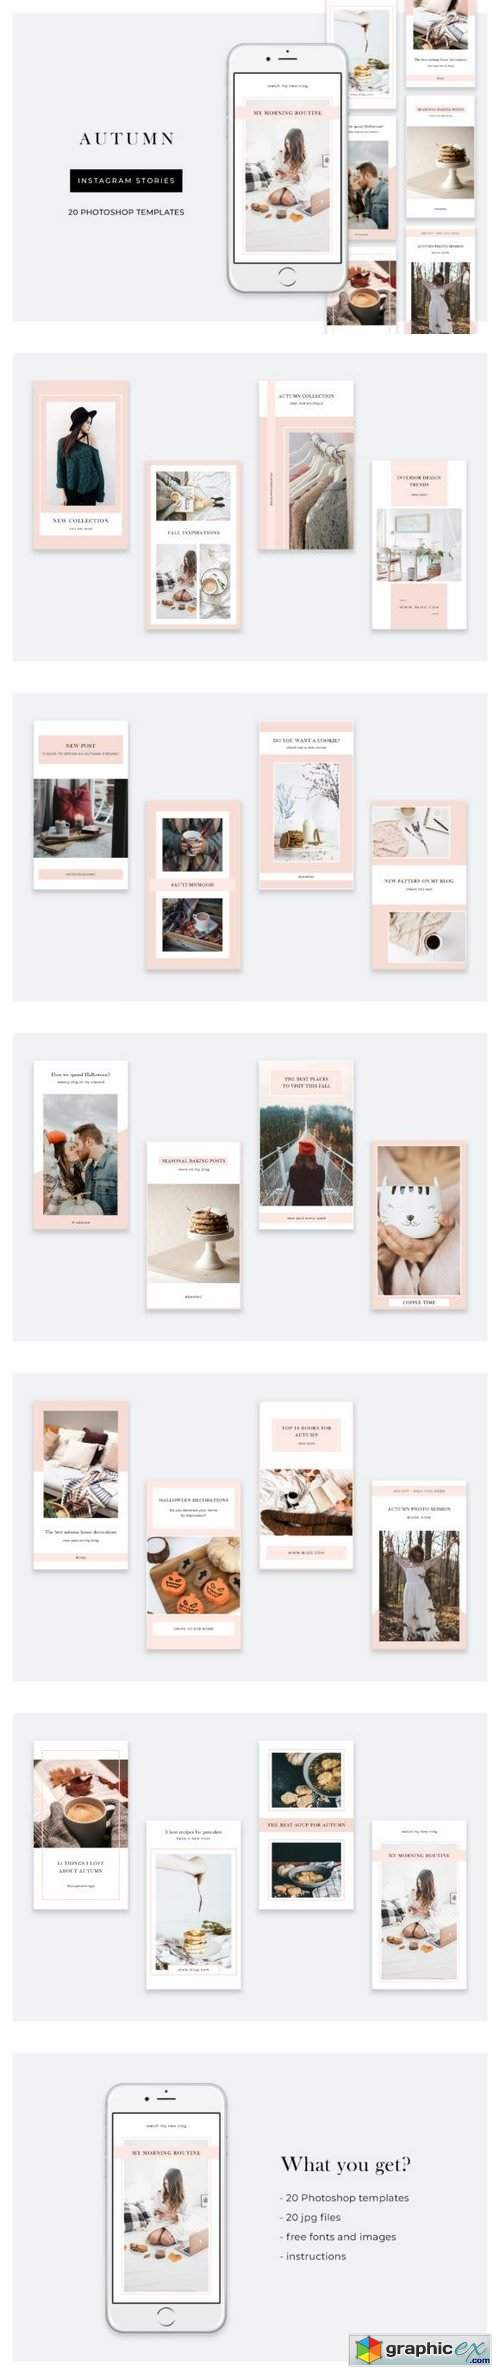 Autumn Instagram Stories – 20 Photoshop templates